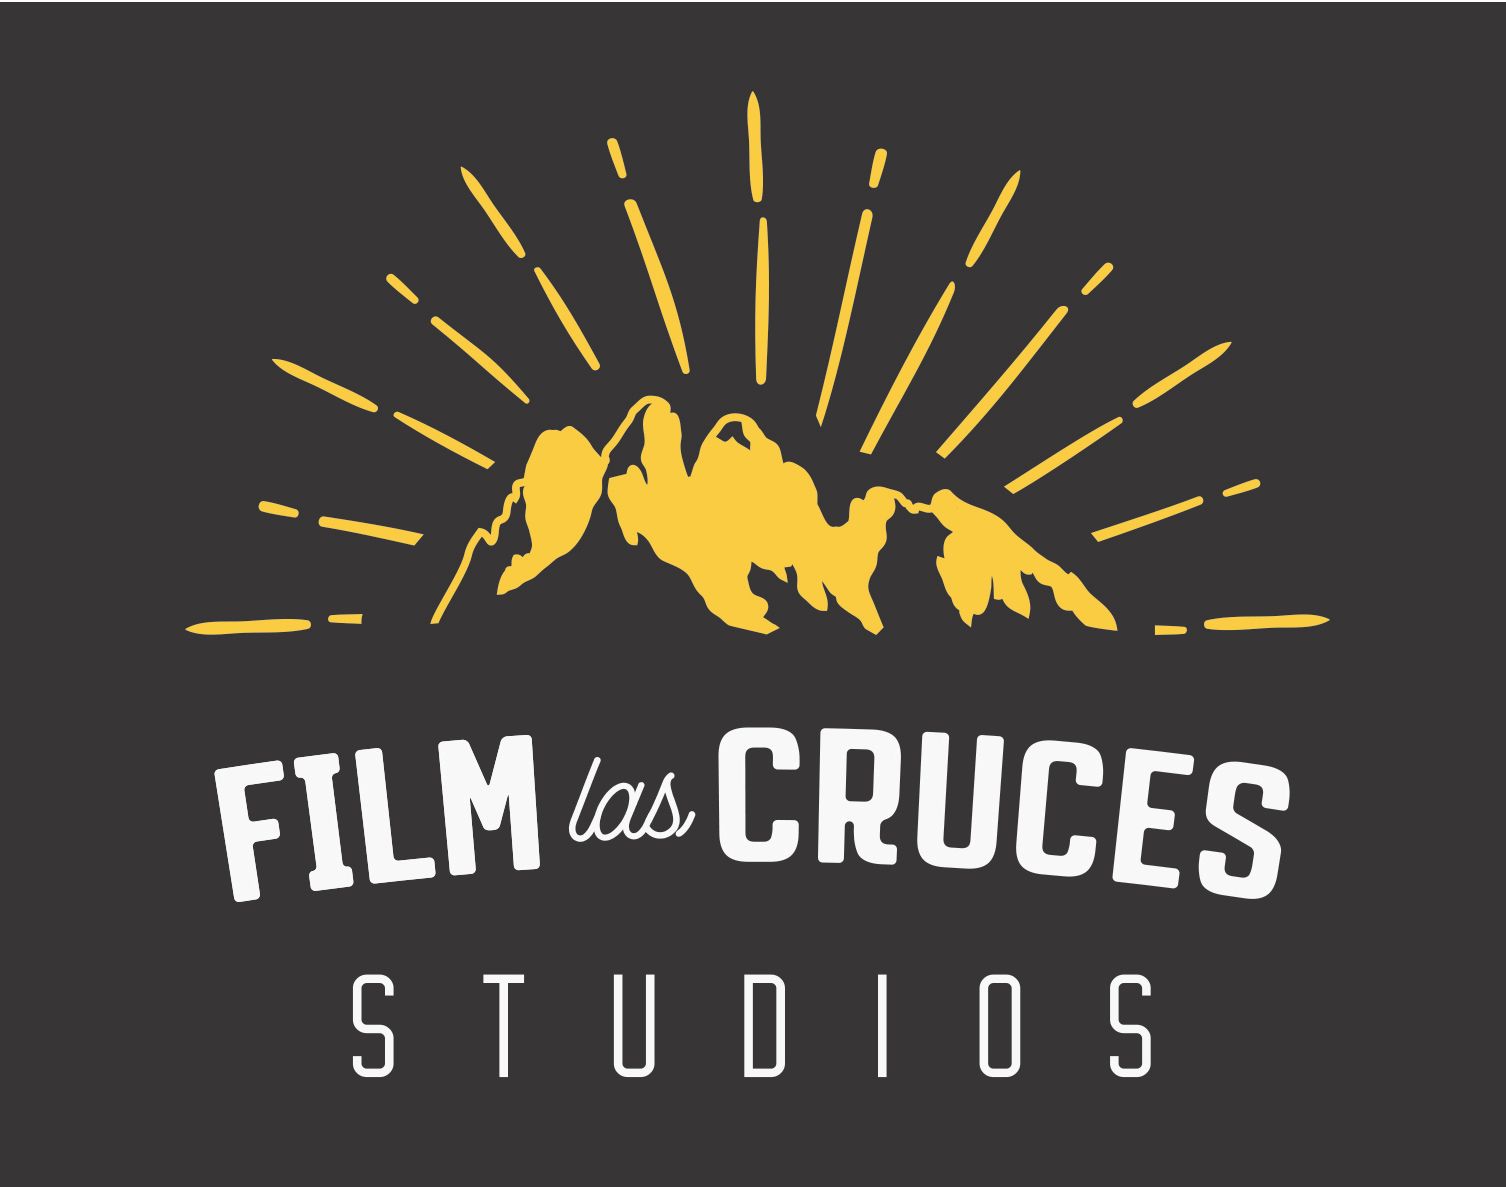 Film Las Cruces Studios – Press Release